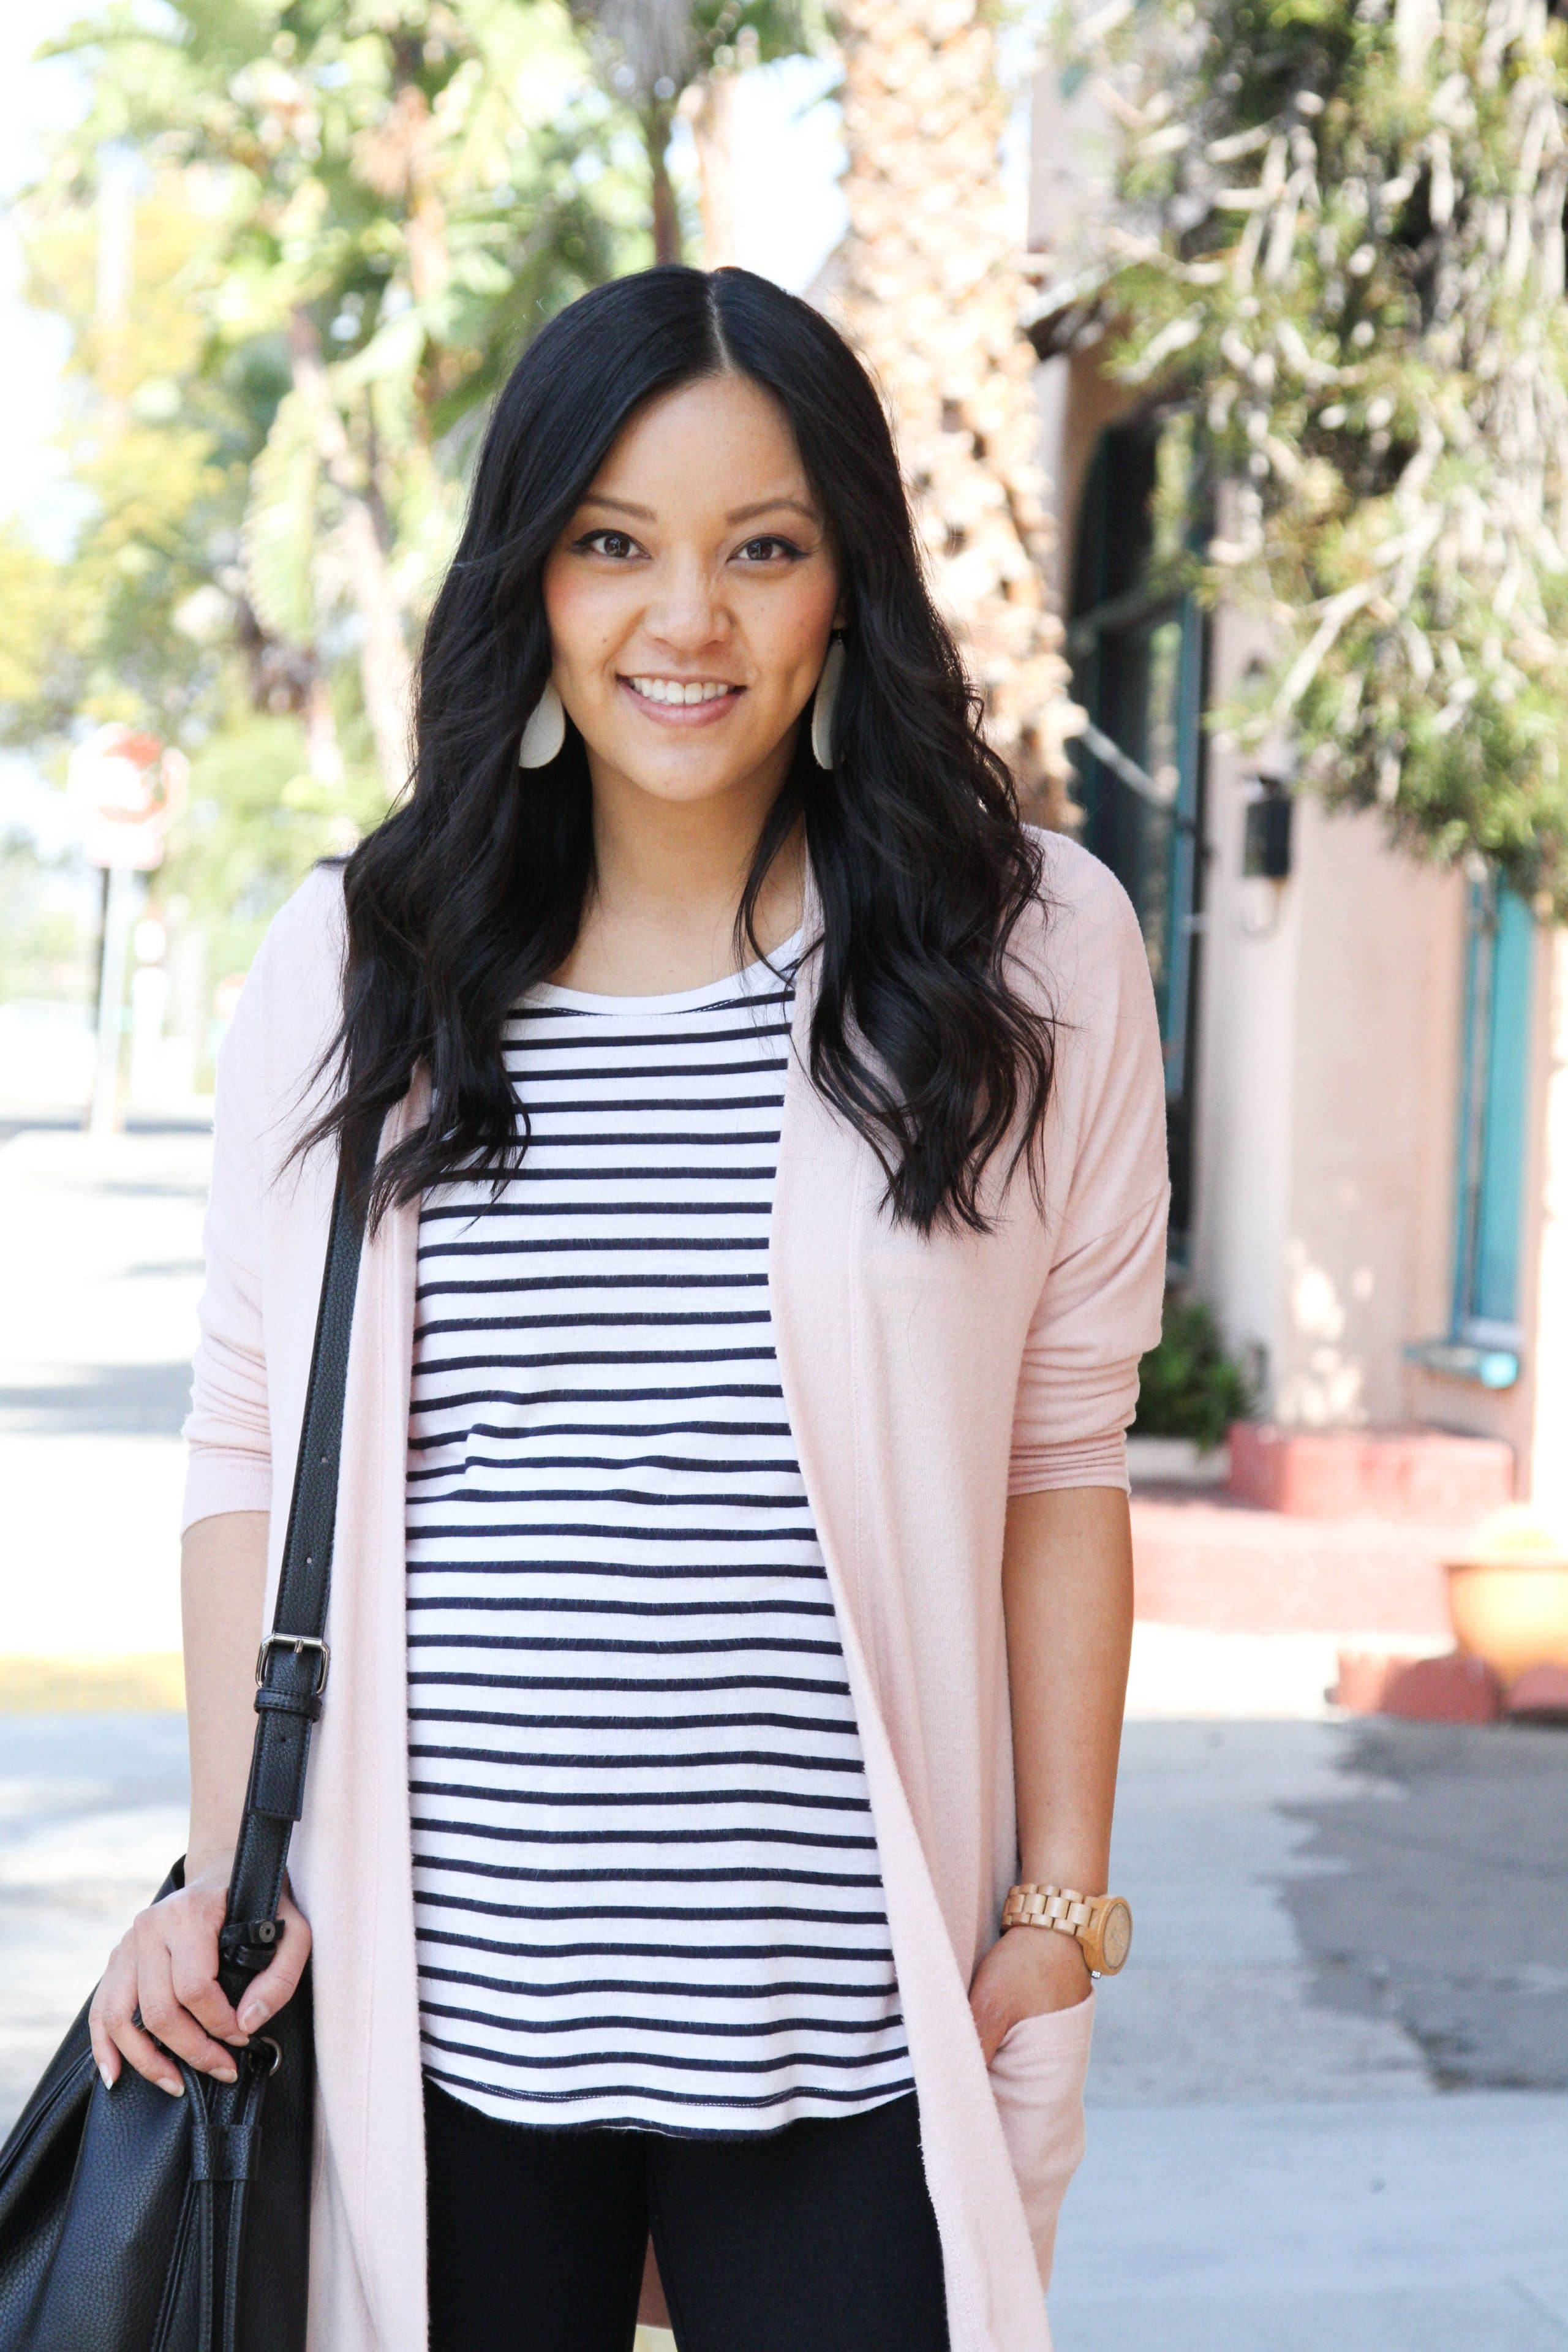 Blush Cardigan + Leggings + Striped Tee + Statement Earrings + Black Bag